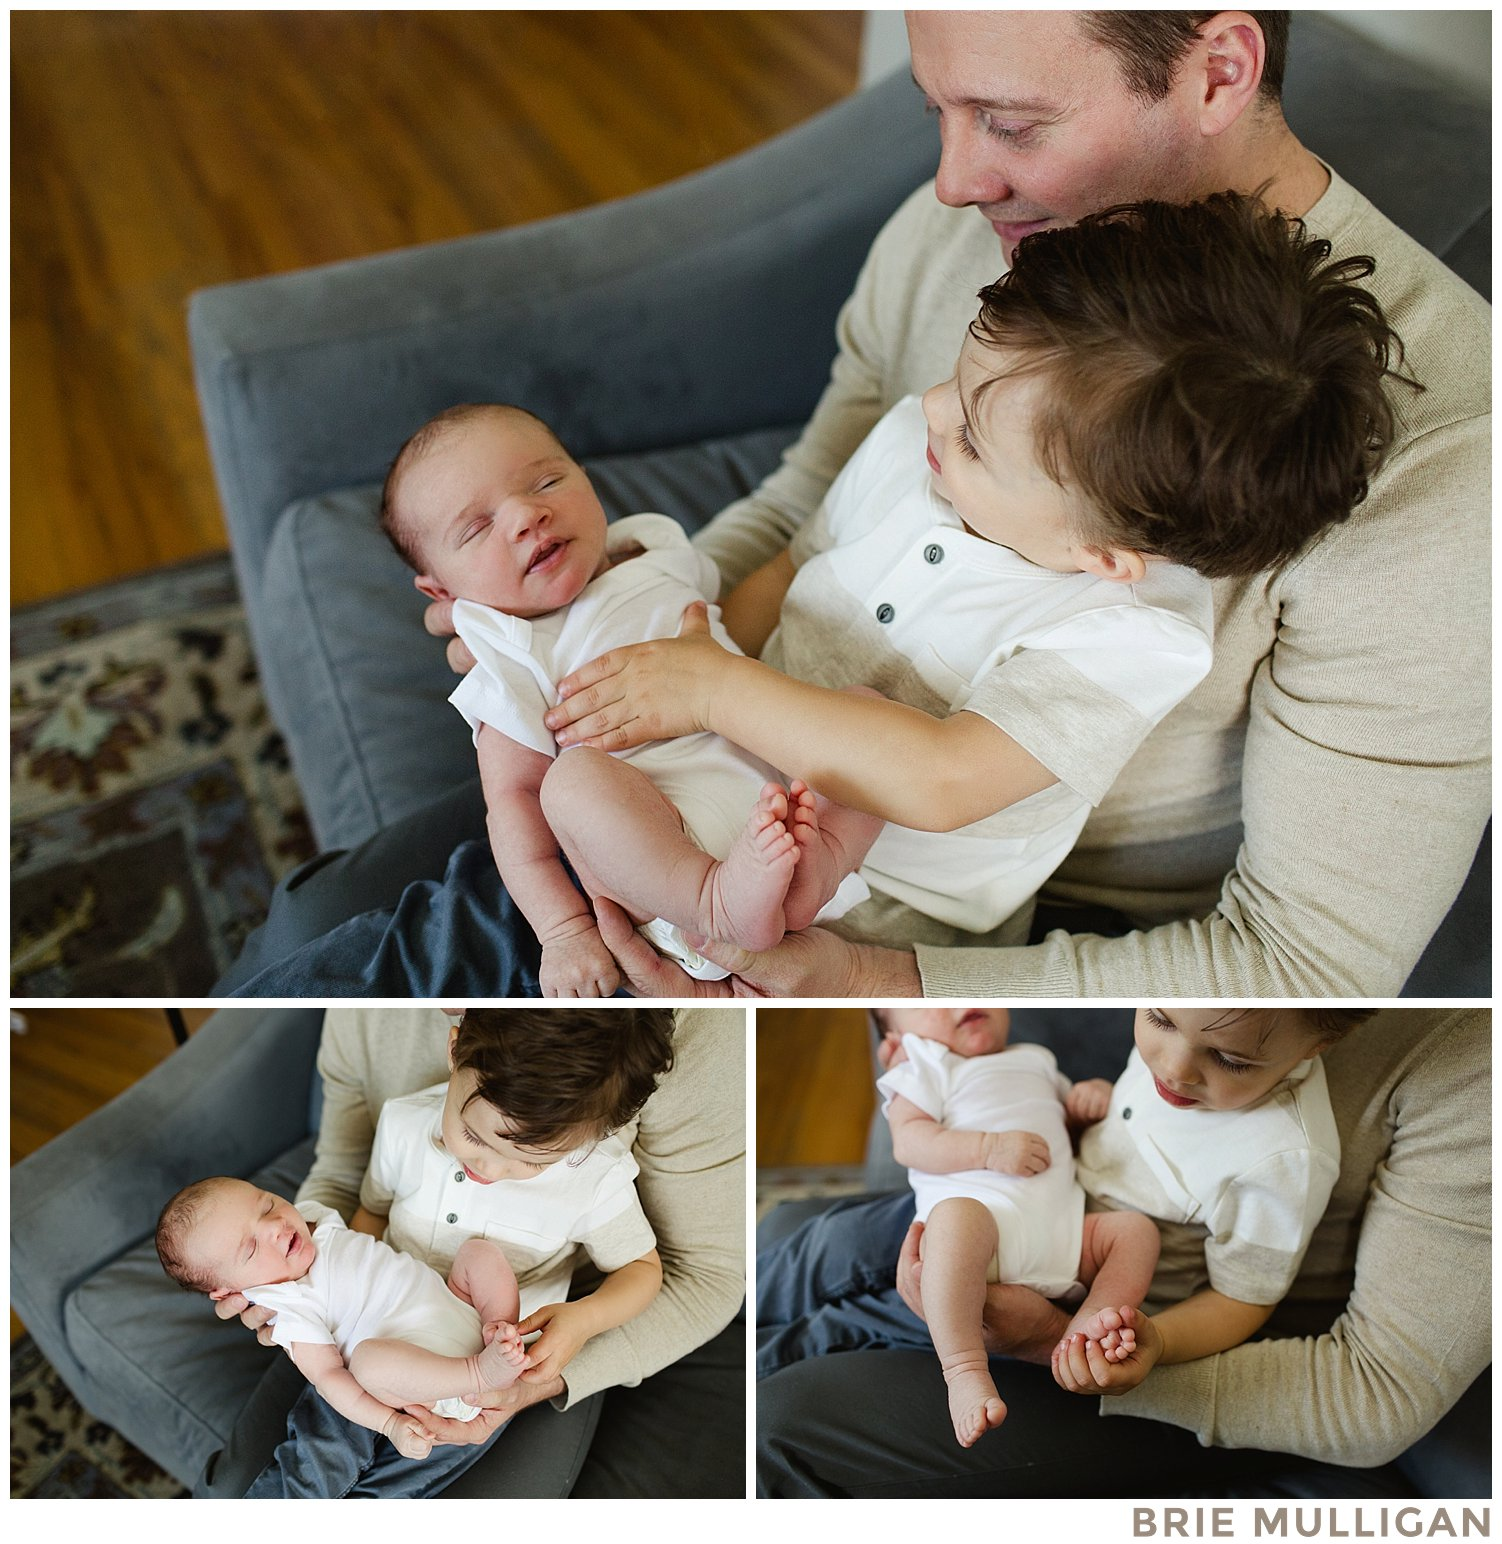 Brie-Mulligan-Family-and-Newborn-Photographer-Montclair-New-Jersey-Northern-NJ-Essex-County-and-NYC_0199.jpg